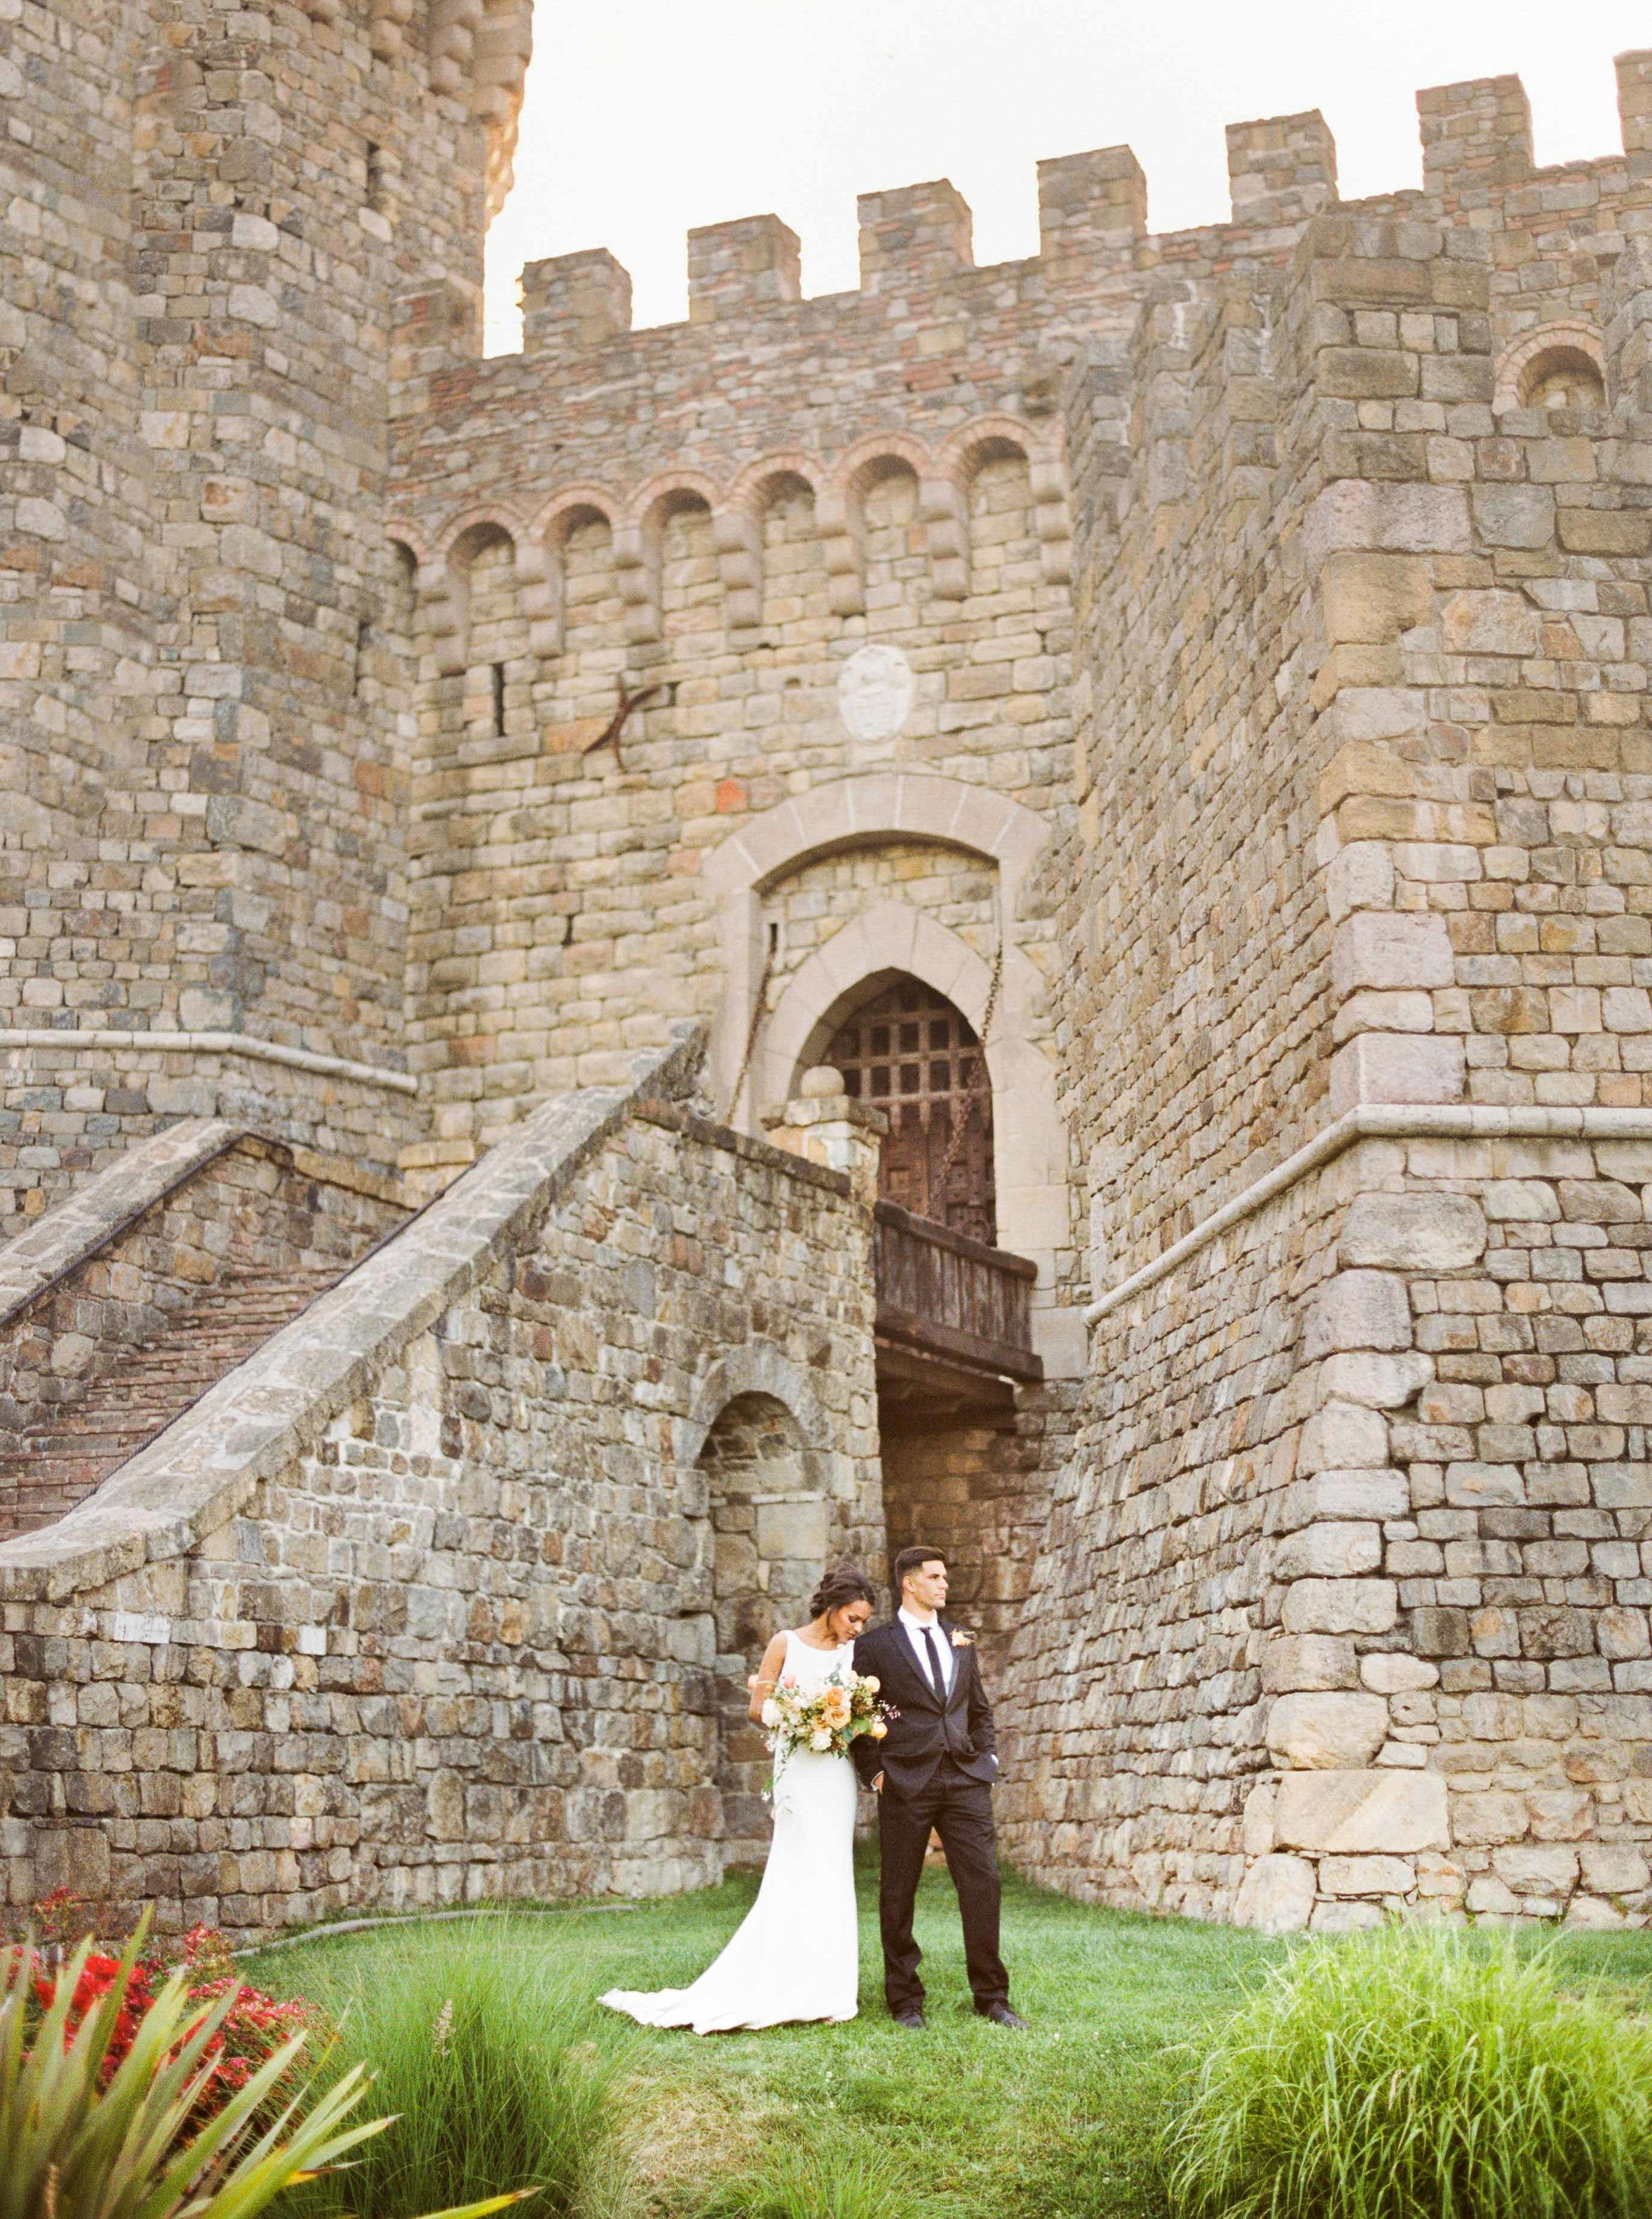 047napa_wedding_photographer_and_videographer_destination_and_elopement_photography.jpg